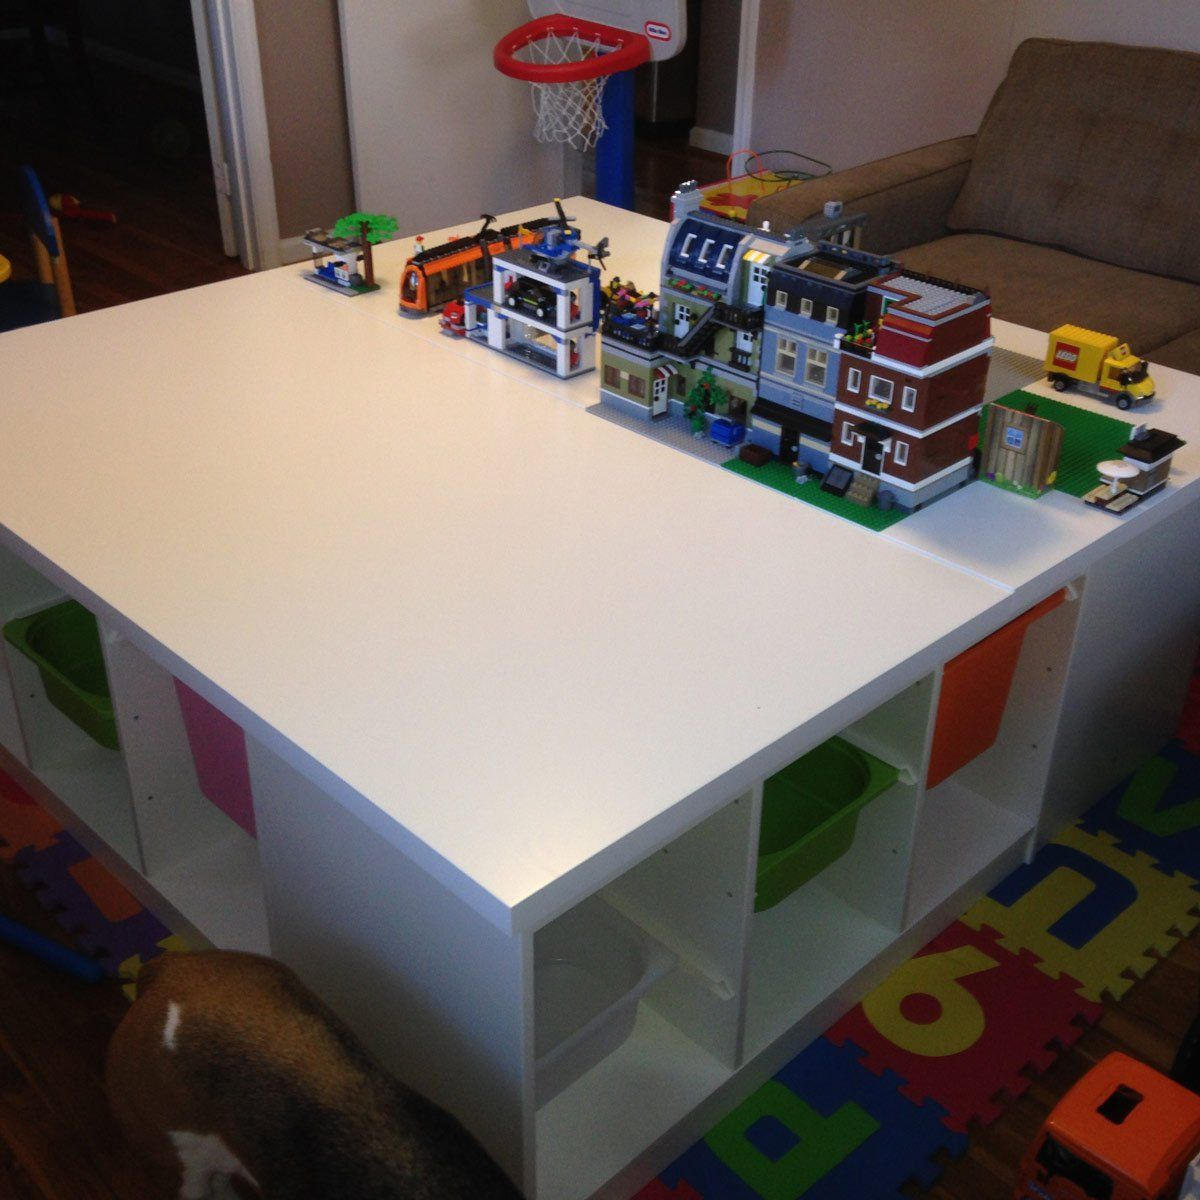 Top 10 Lego Tables You Ve Got To See Lego Table Lego Table With Storage Lego Room